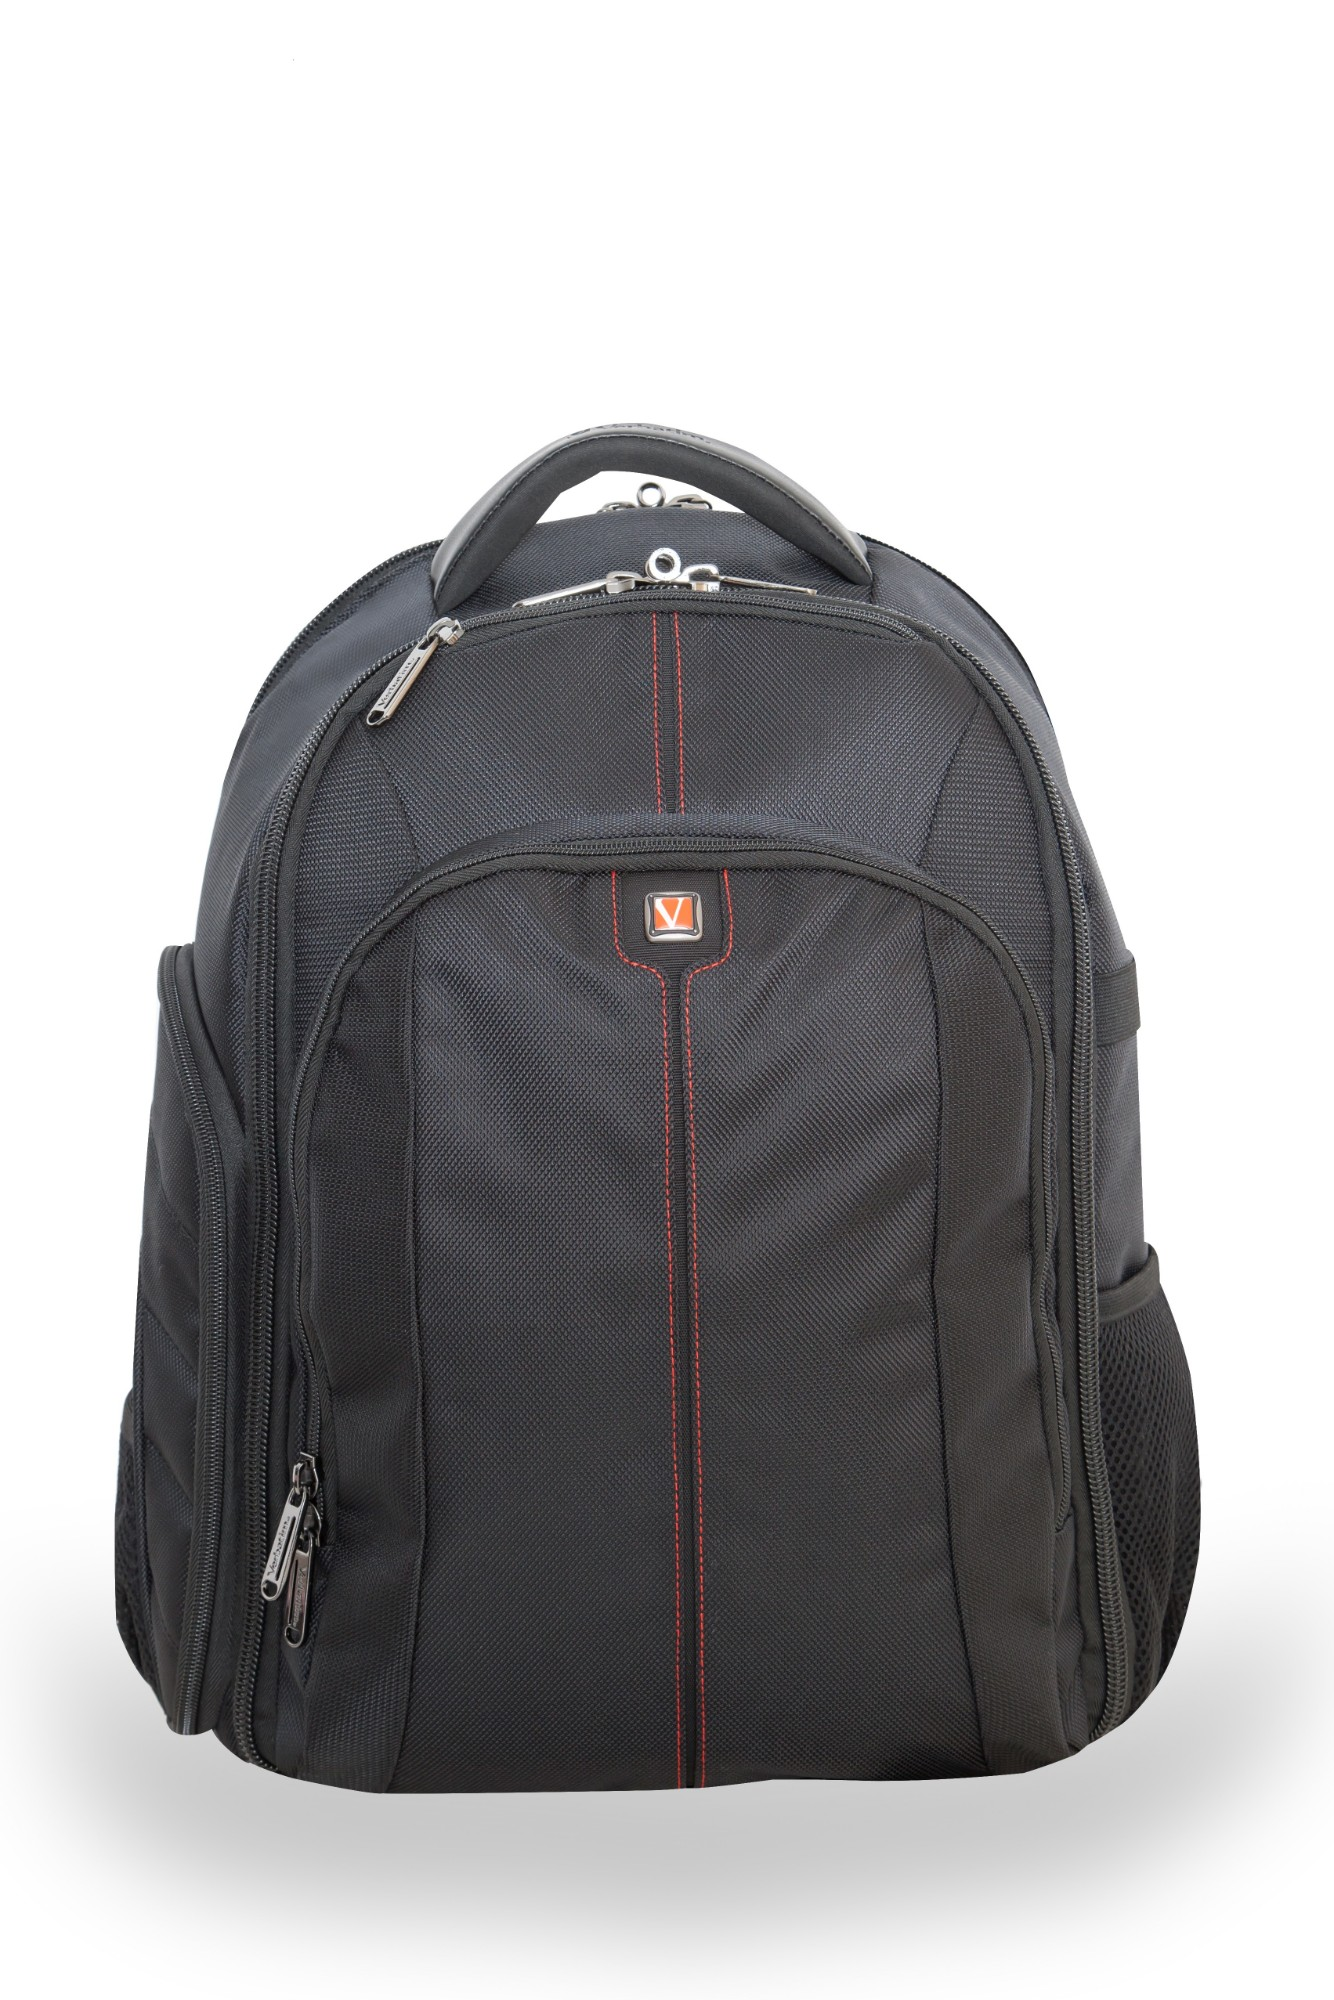 Melbourne Backpack For 16in Notebook & Camera